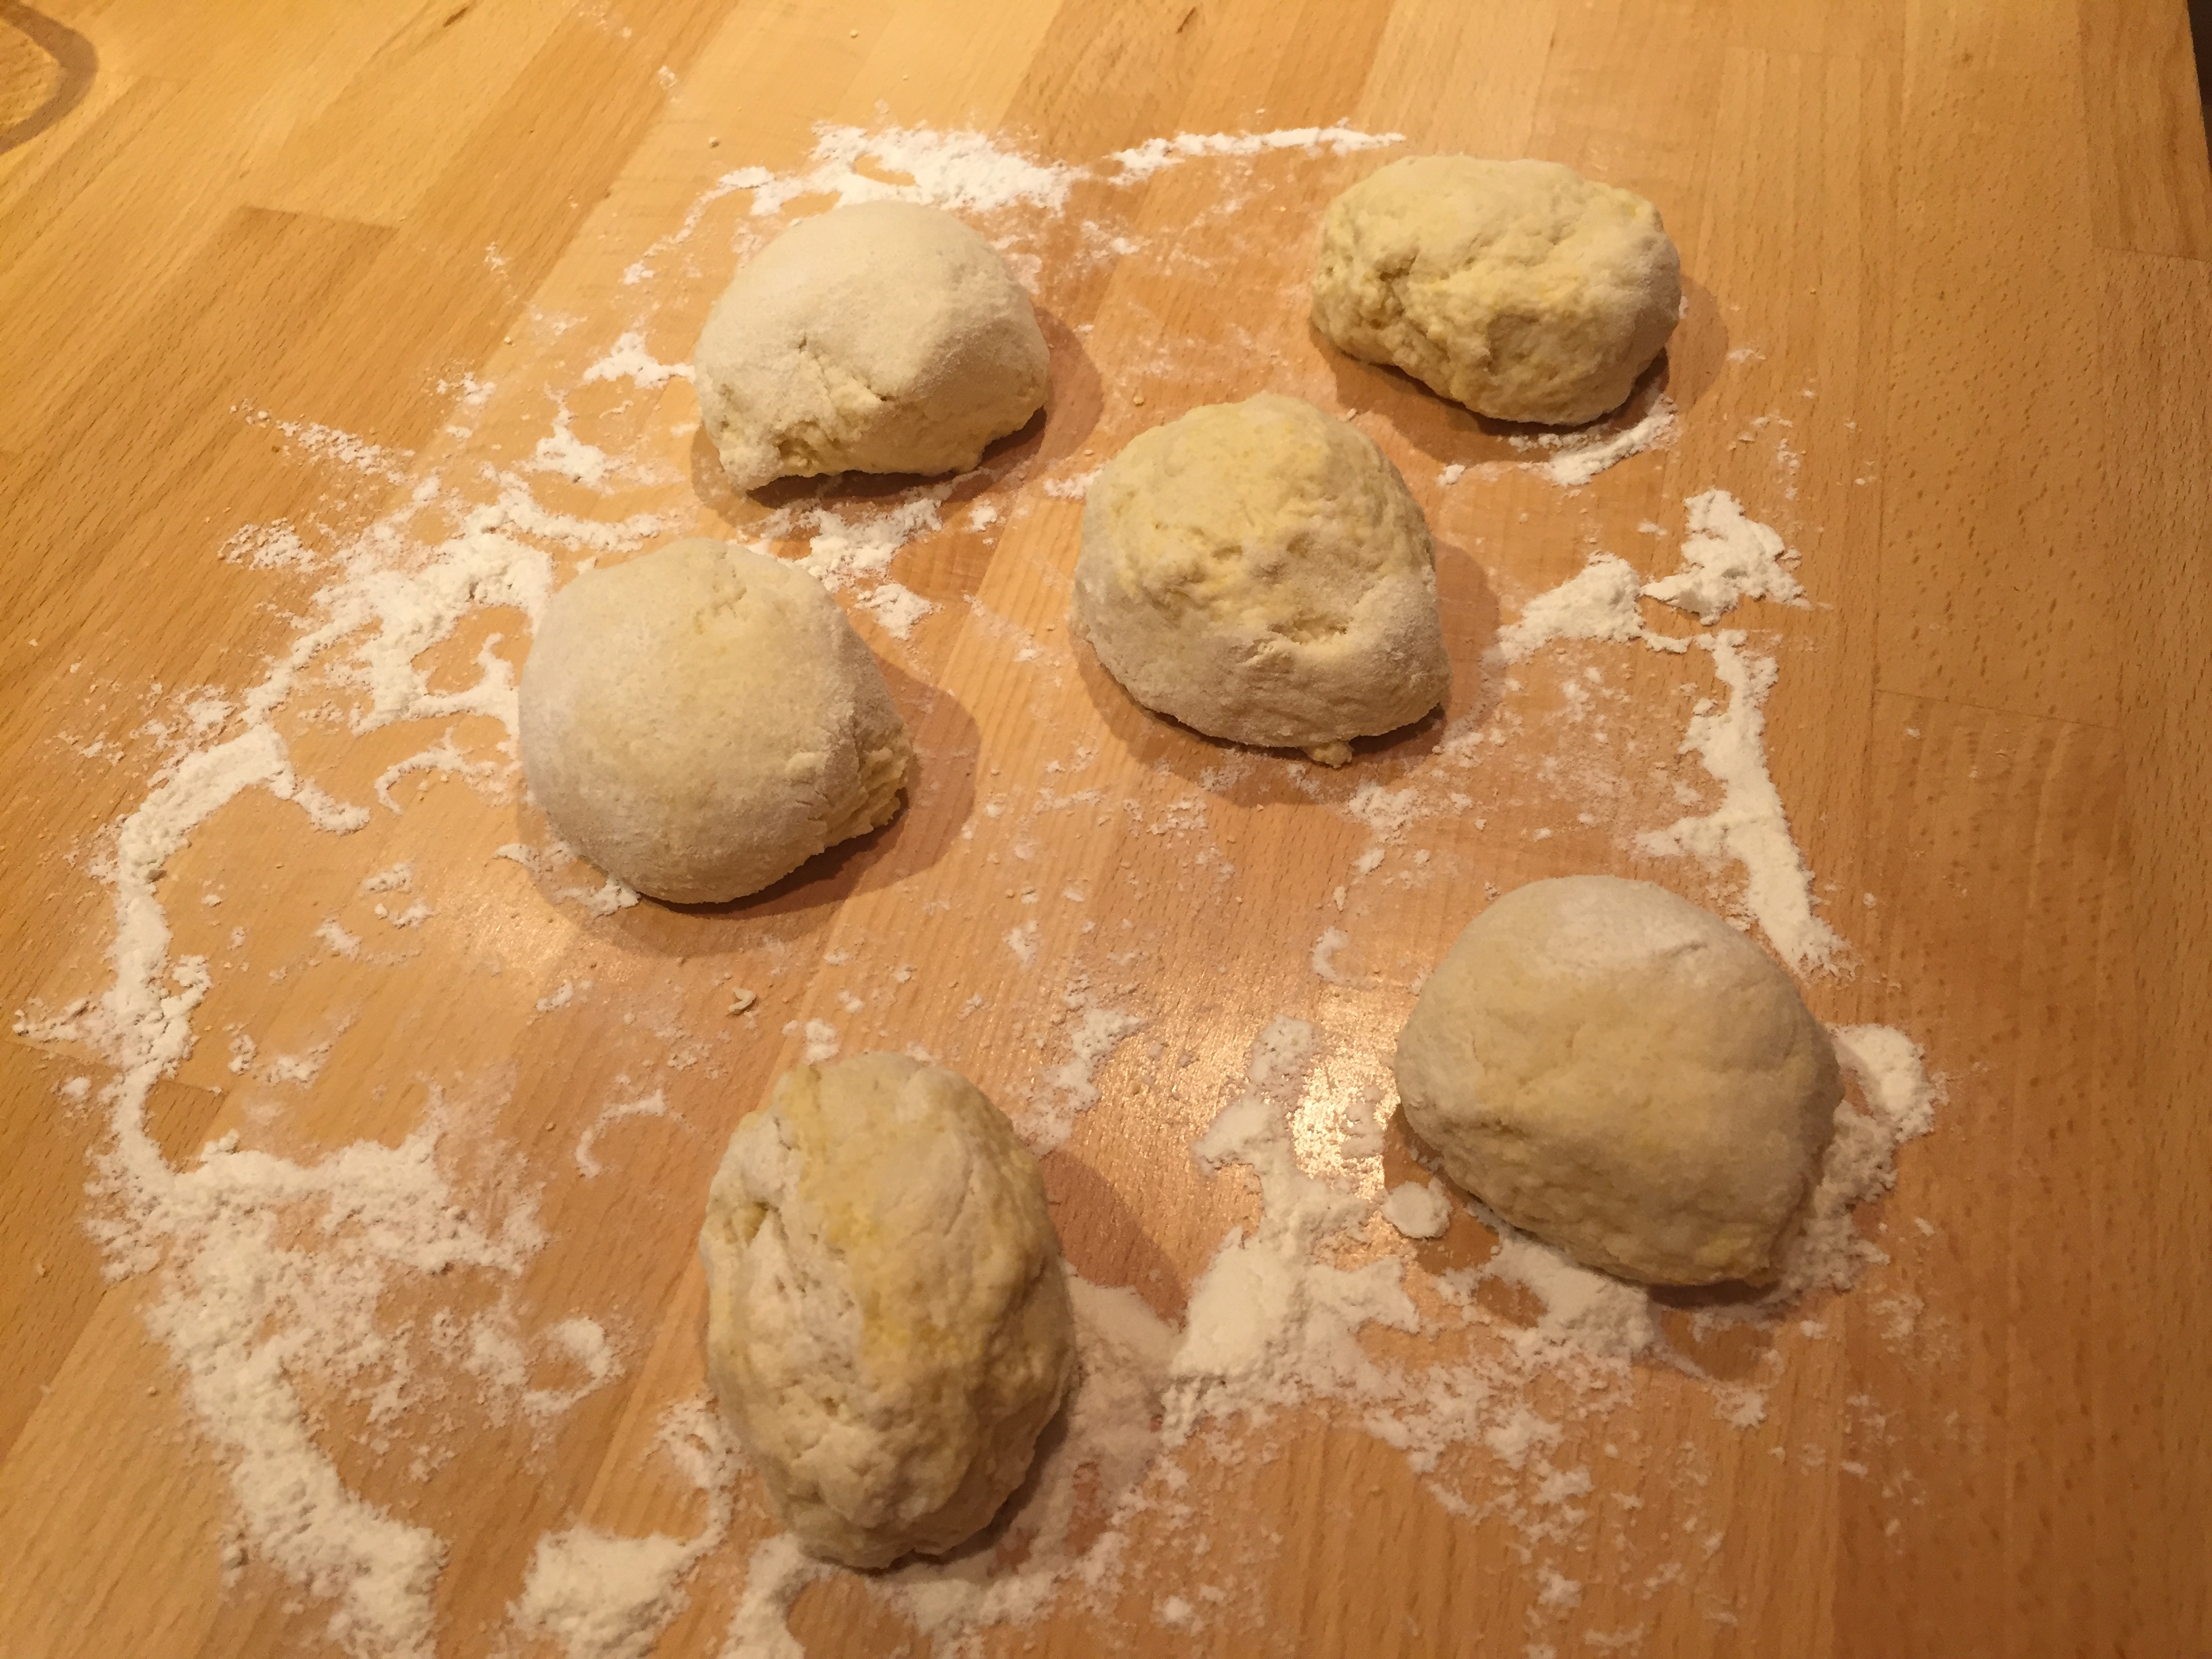 Dough divided up